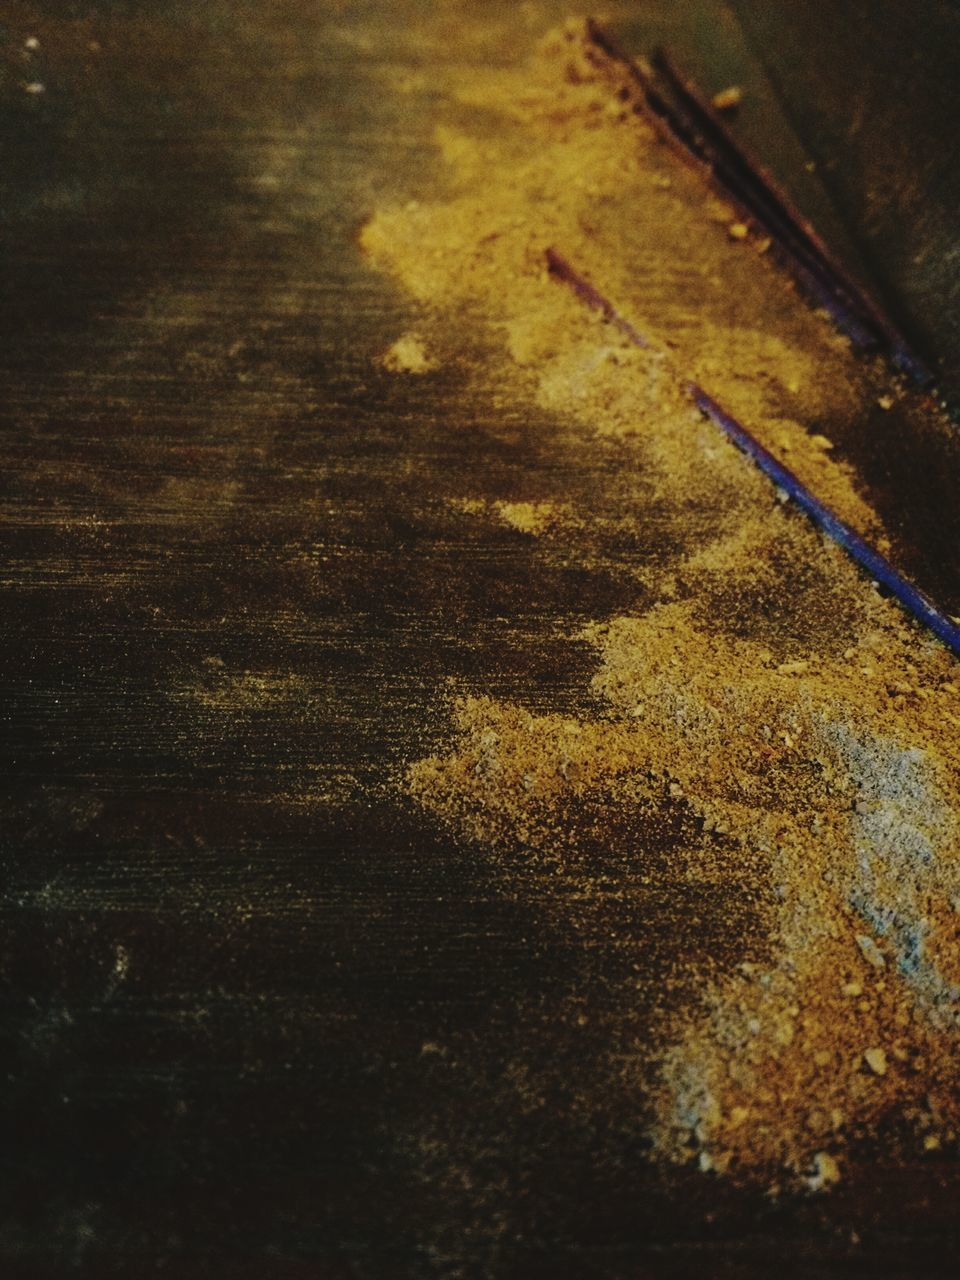 road, transportation, no people, outdoors, asphalt, day, yellow, nature, low section, close-up